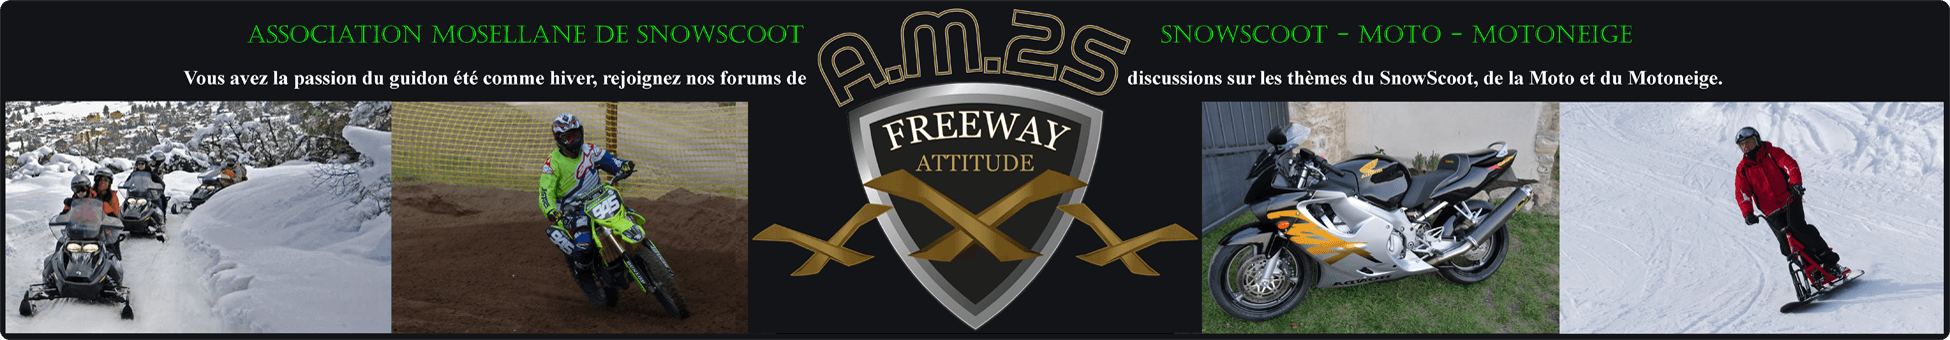 Association Mosellane de Snowscoot ~ Freeway-Attitude